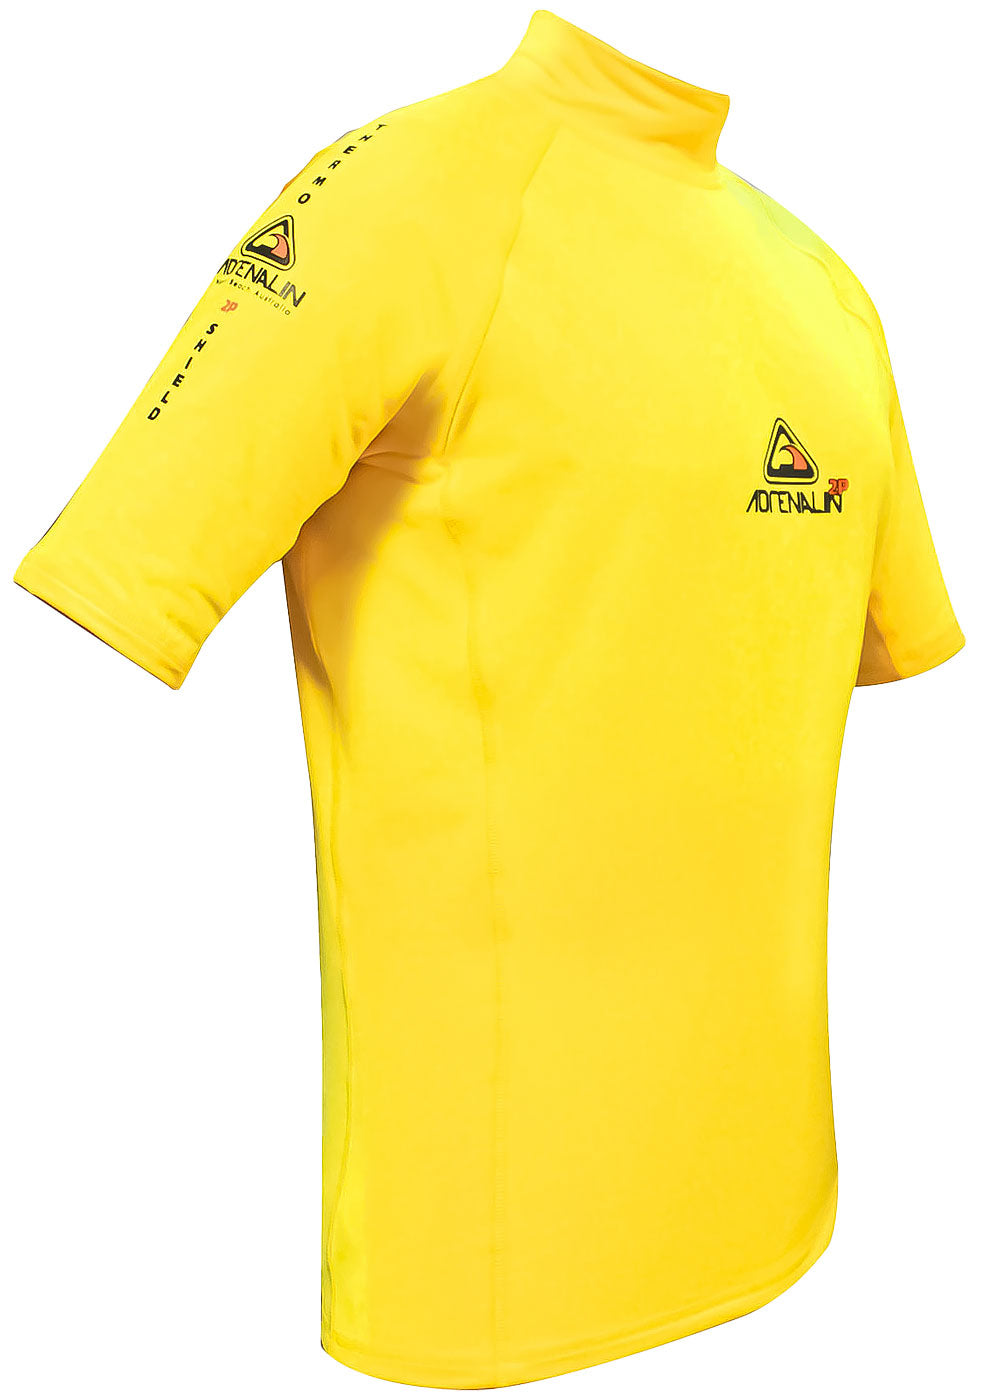 Adrenalin 2P Thermal short Sleeve Rash Guard yellow buy online rashie